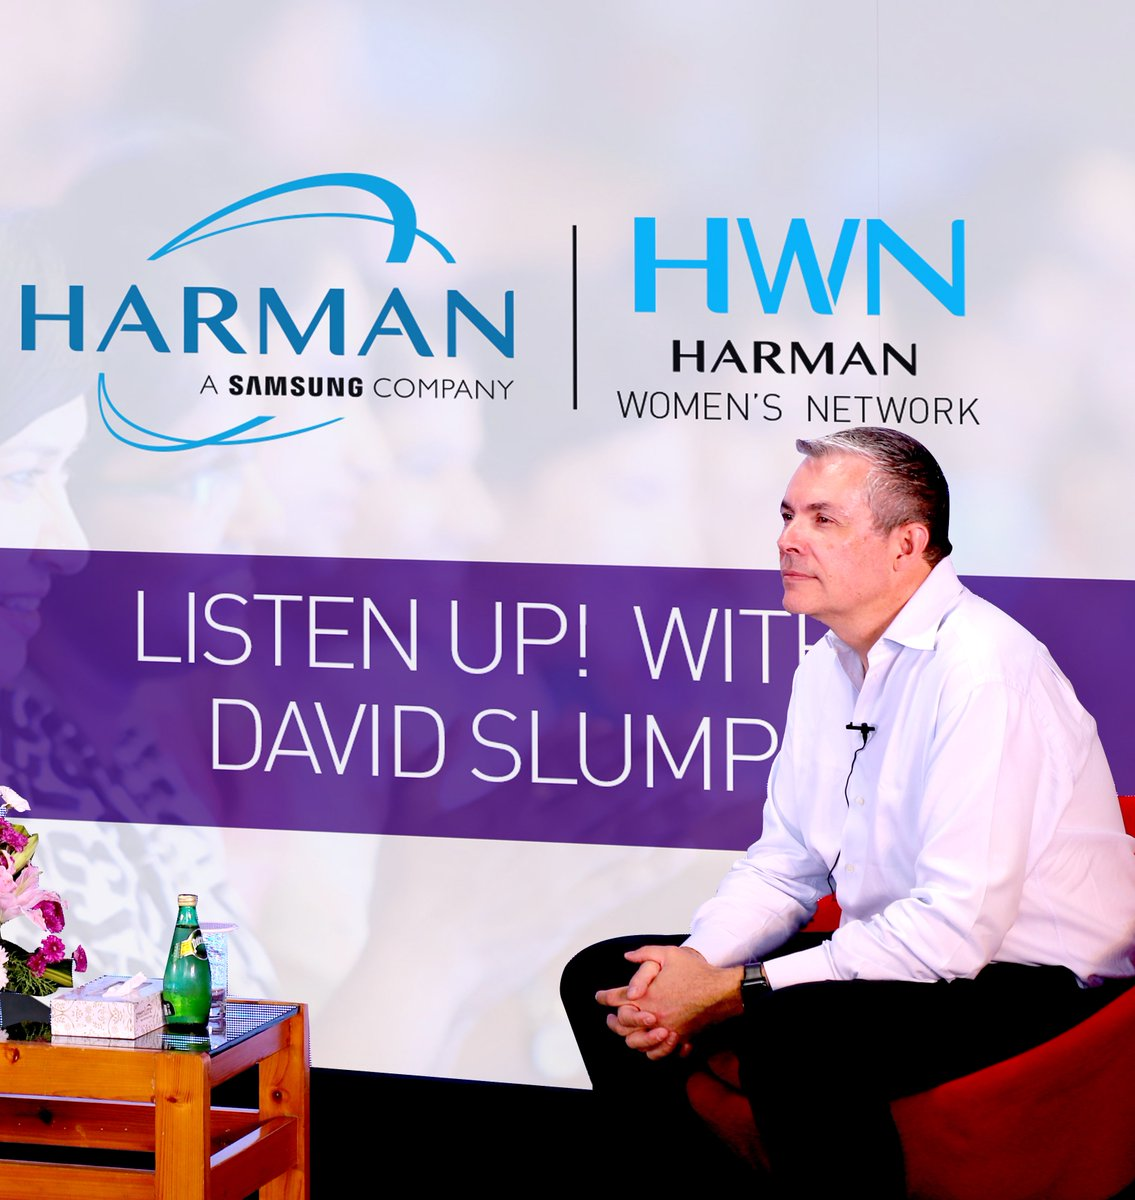 """HARMAN Connected Services welcomed President David Slump with a power-packed session of """"Listen Up!""""- Part of a series of informal networking events with leaders and our women colleagues across offices. Know more- https://t.co/rKYgWkISPN #HWN #HARMAN https://t.co/Yneb2wN1iz"""